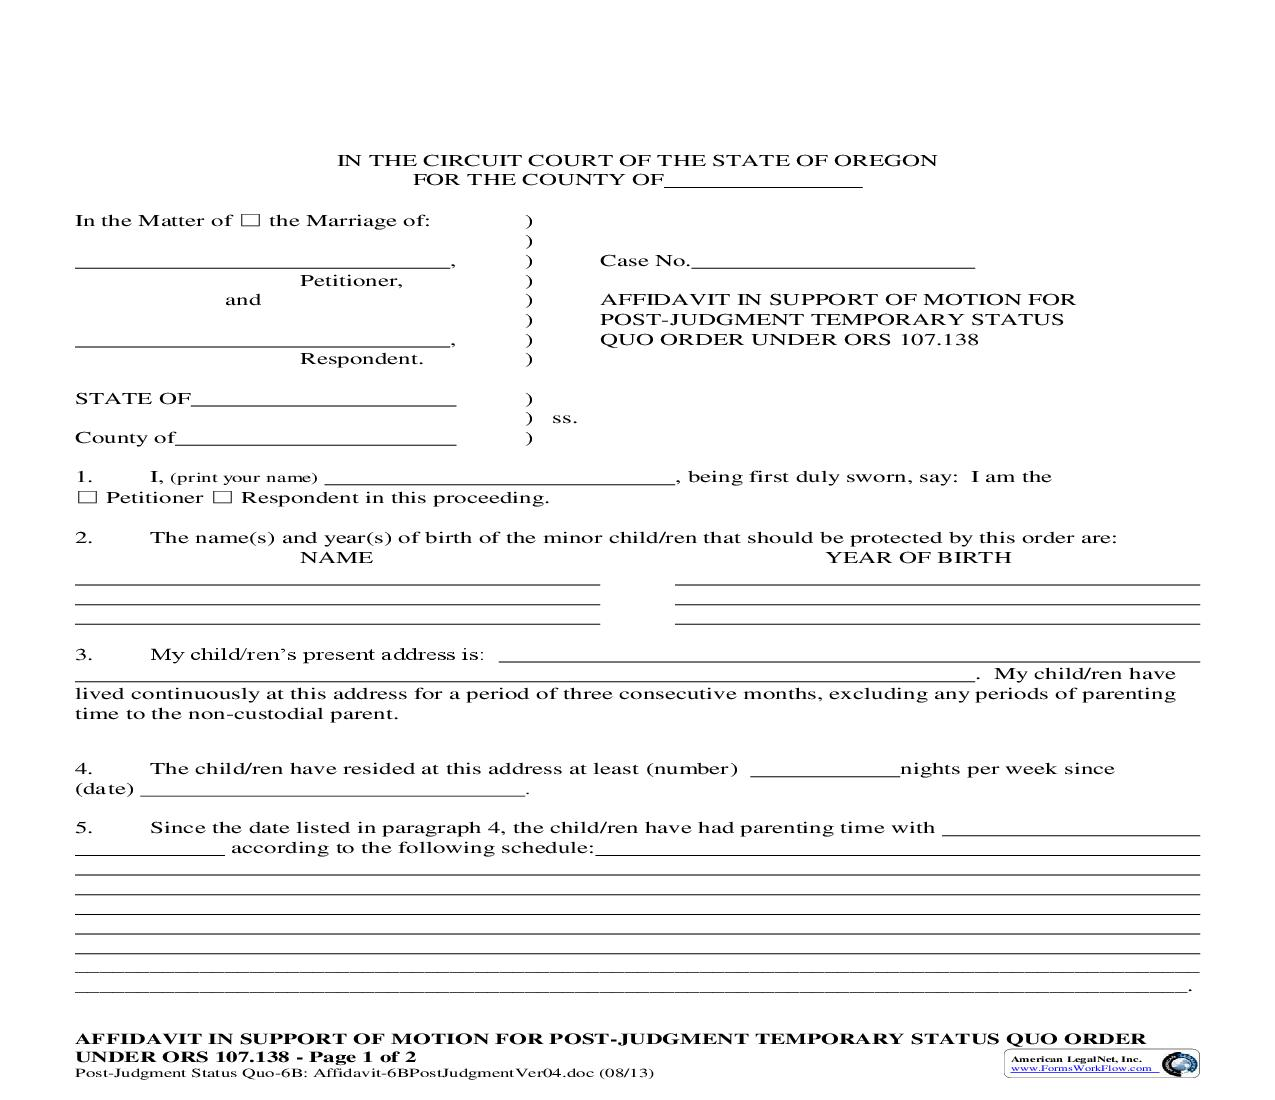 Affidavit In Support Of Motion For Post-Judgment Temporary Status Quo Order (6B) | Pdf Fpdf Doc Docx | Oregon